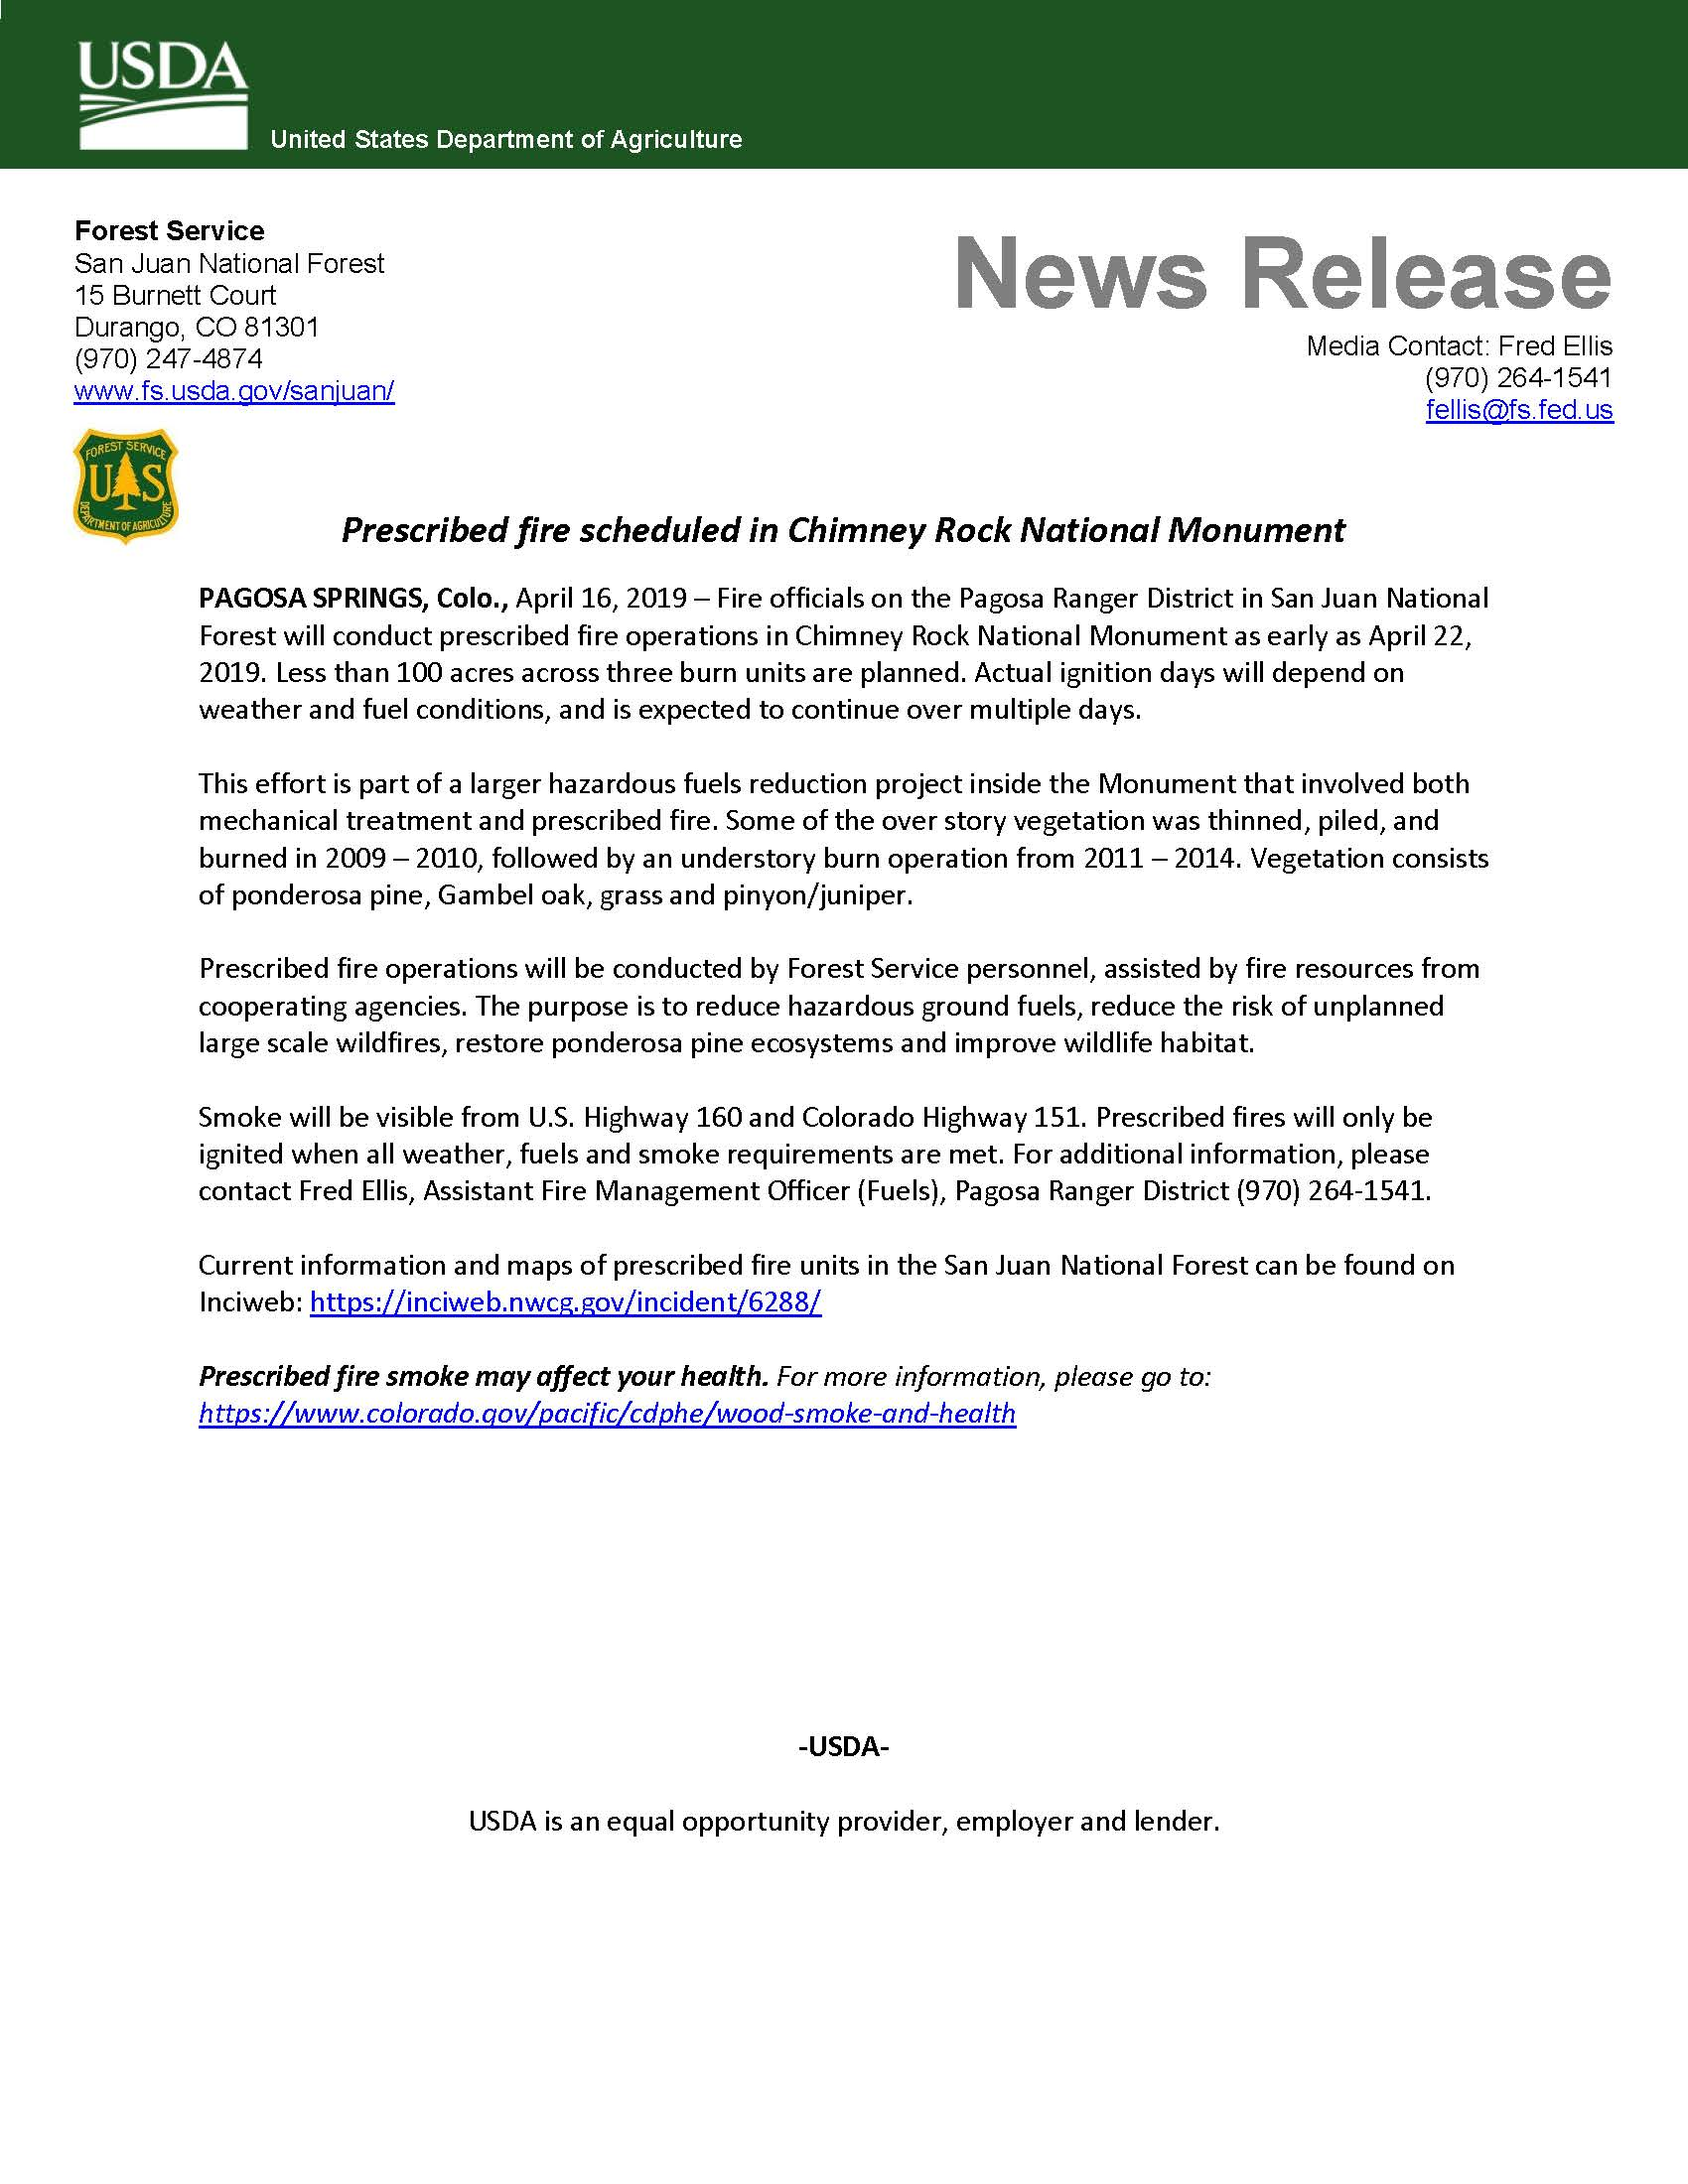 Prescribed Fire Operations in Chimney Rock National Monument